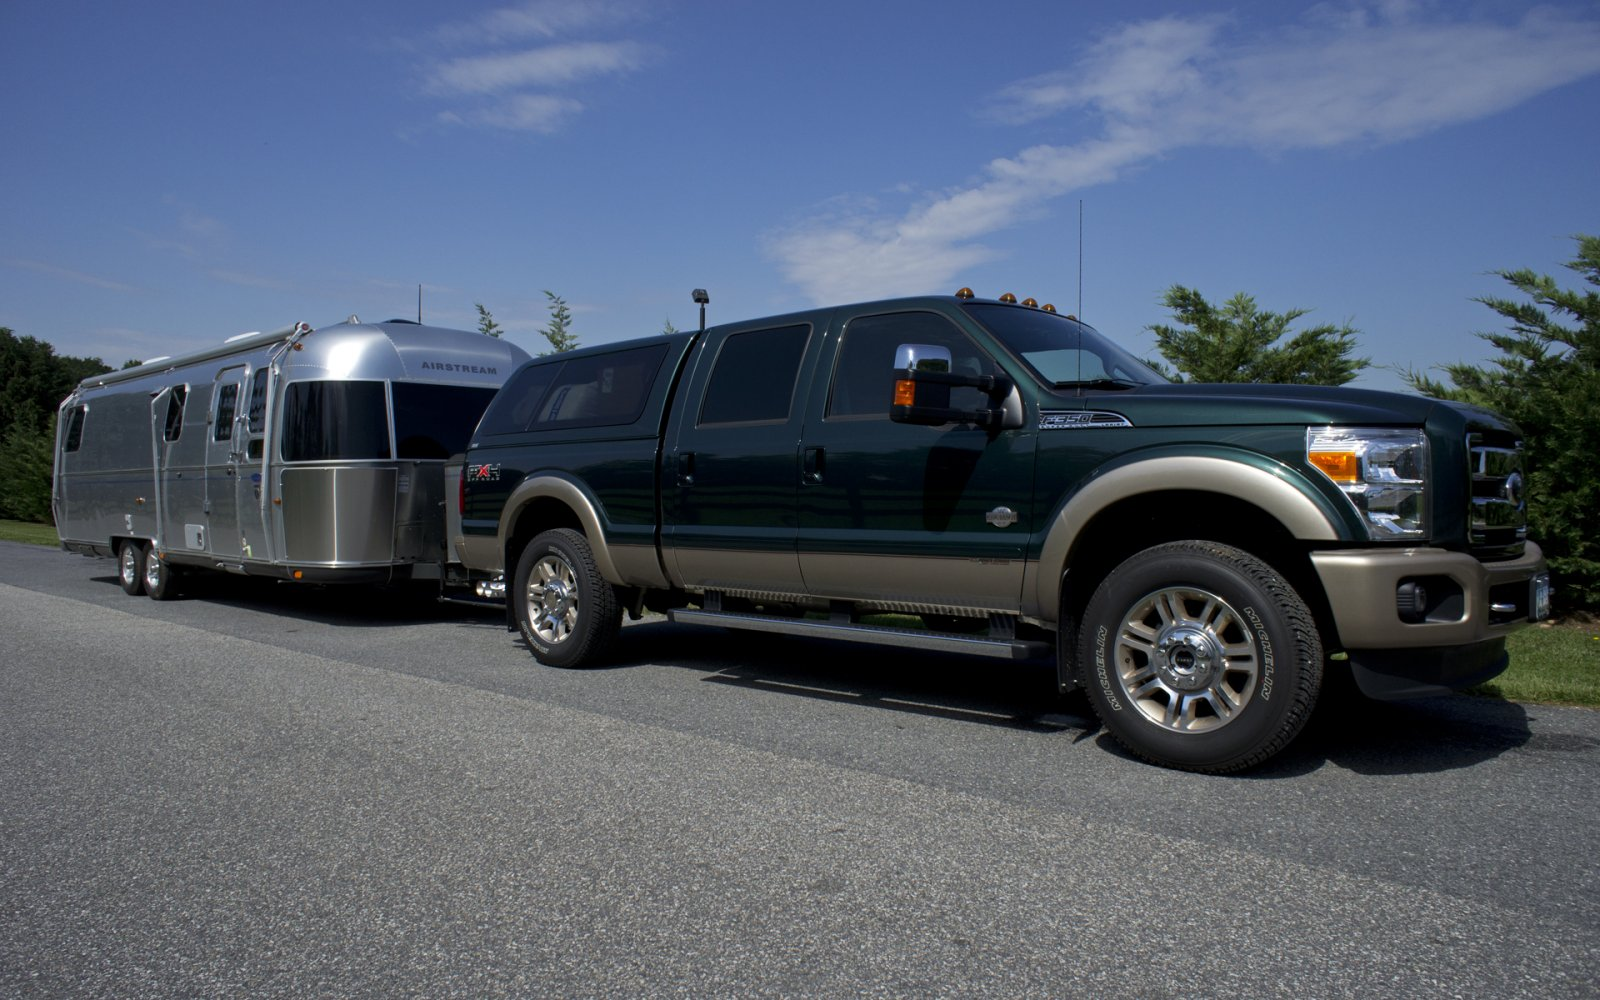 Click image for larger version  Name:11AirstreamClass301stTrip-1.jpg Views:97 Size:274.1 KB ID:132845